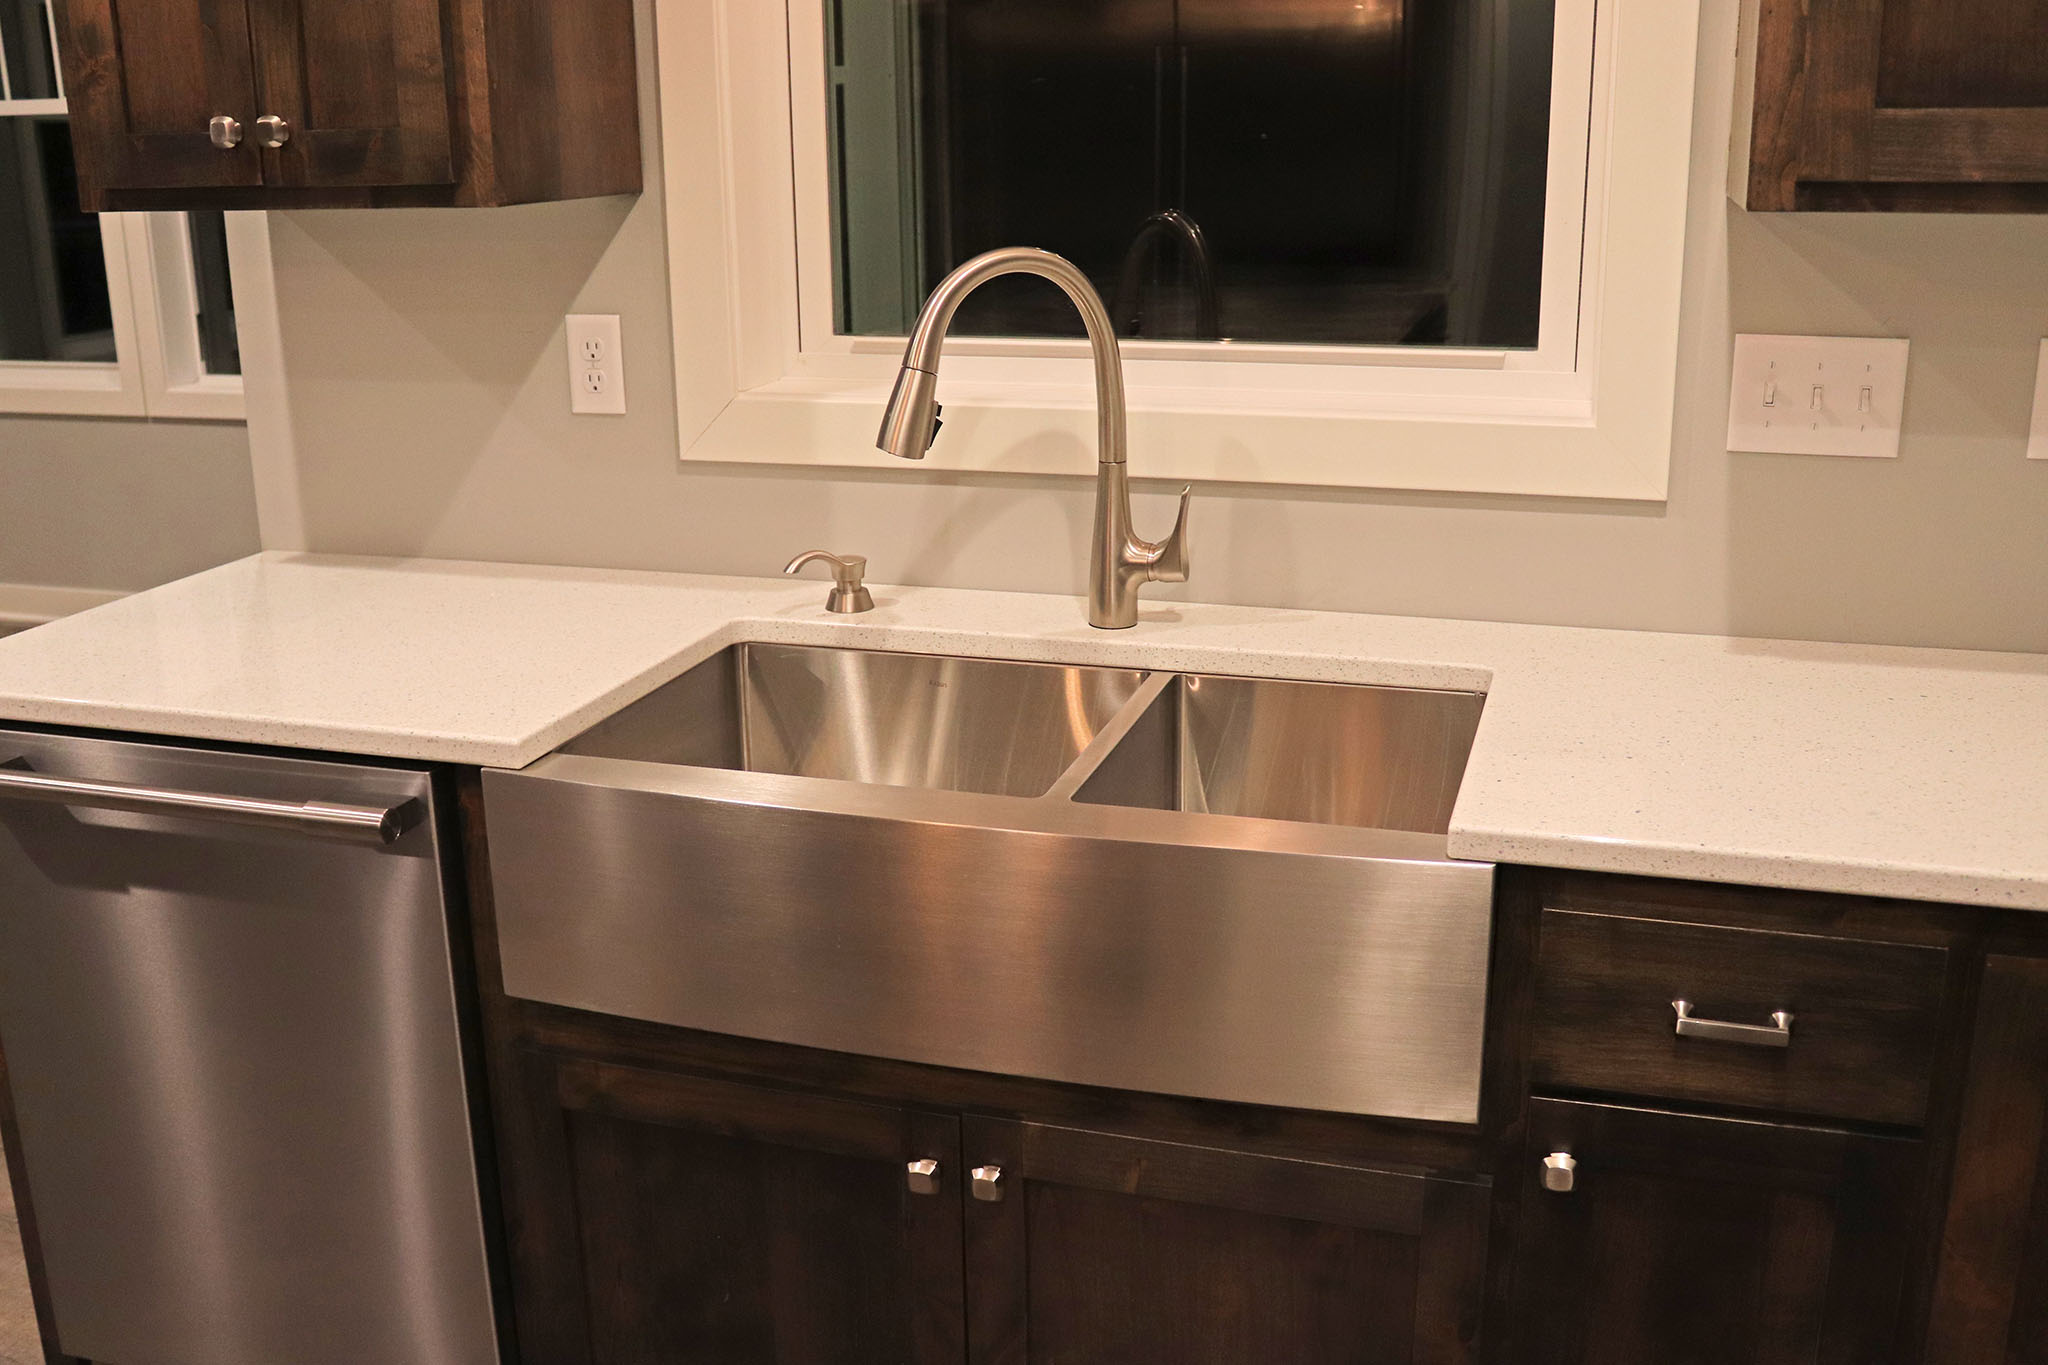 Closeup of kitchen stainless steel farm sink and quartz countertop